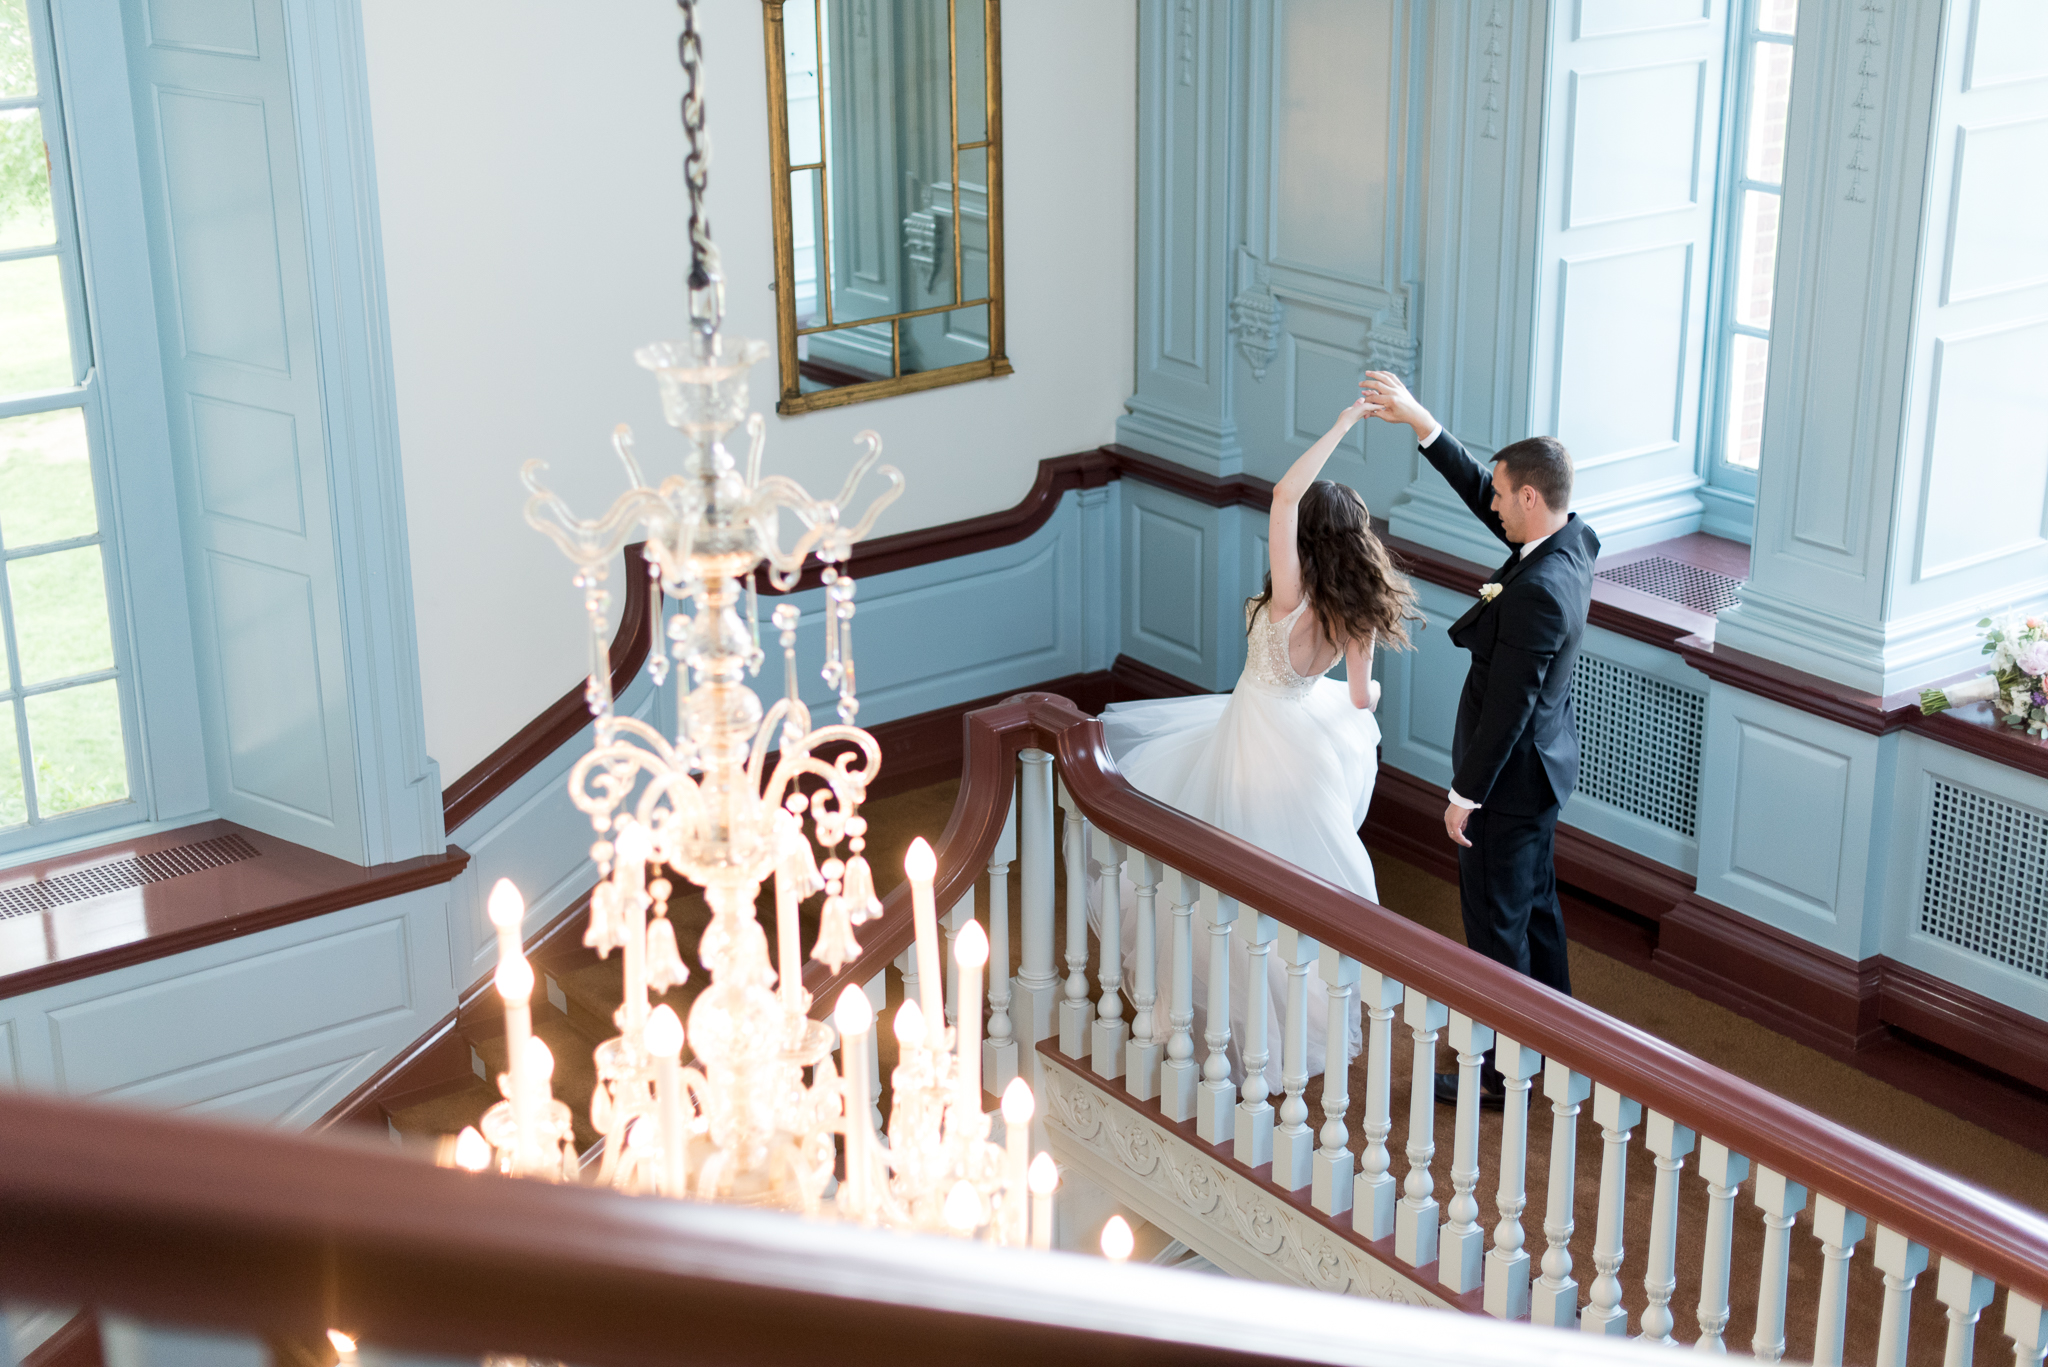 lovett-hall-dearborn-michigan-henry-ford-museum-classic-high-end-wedding-photo-132